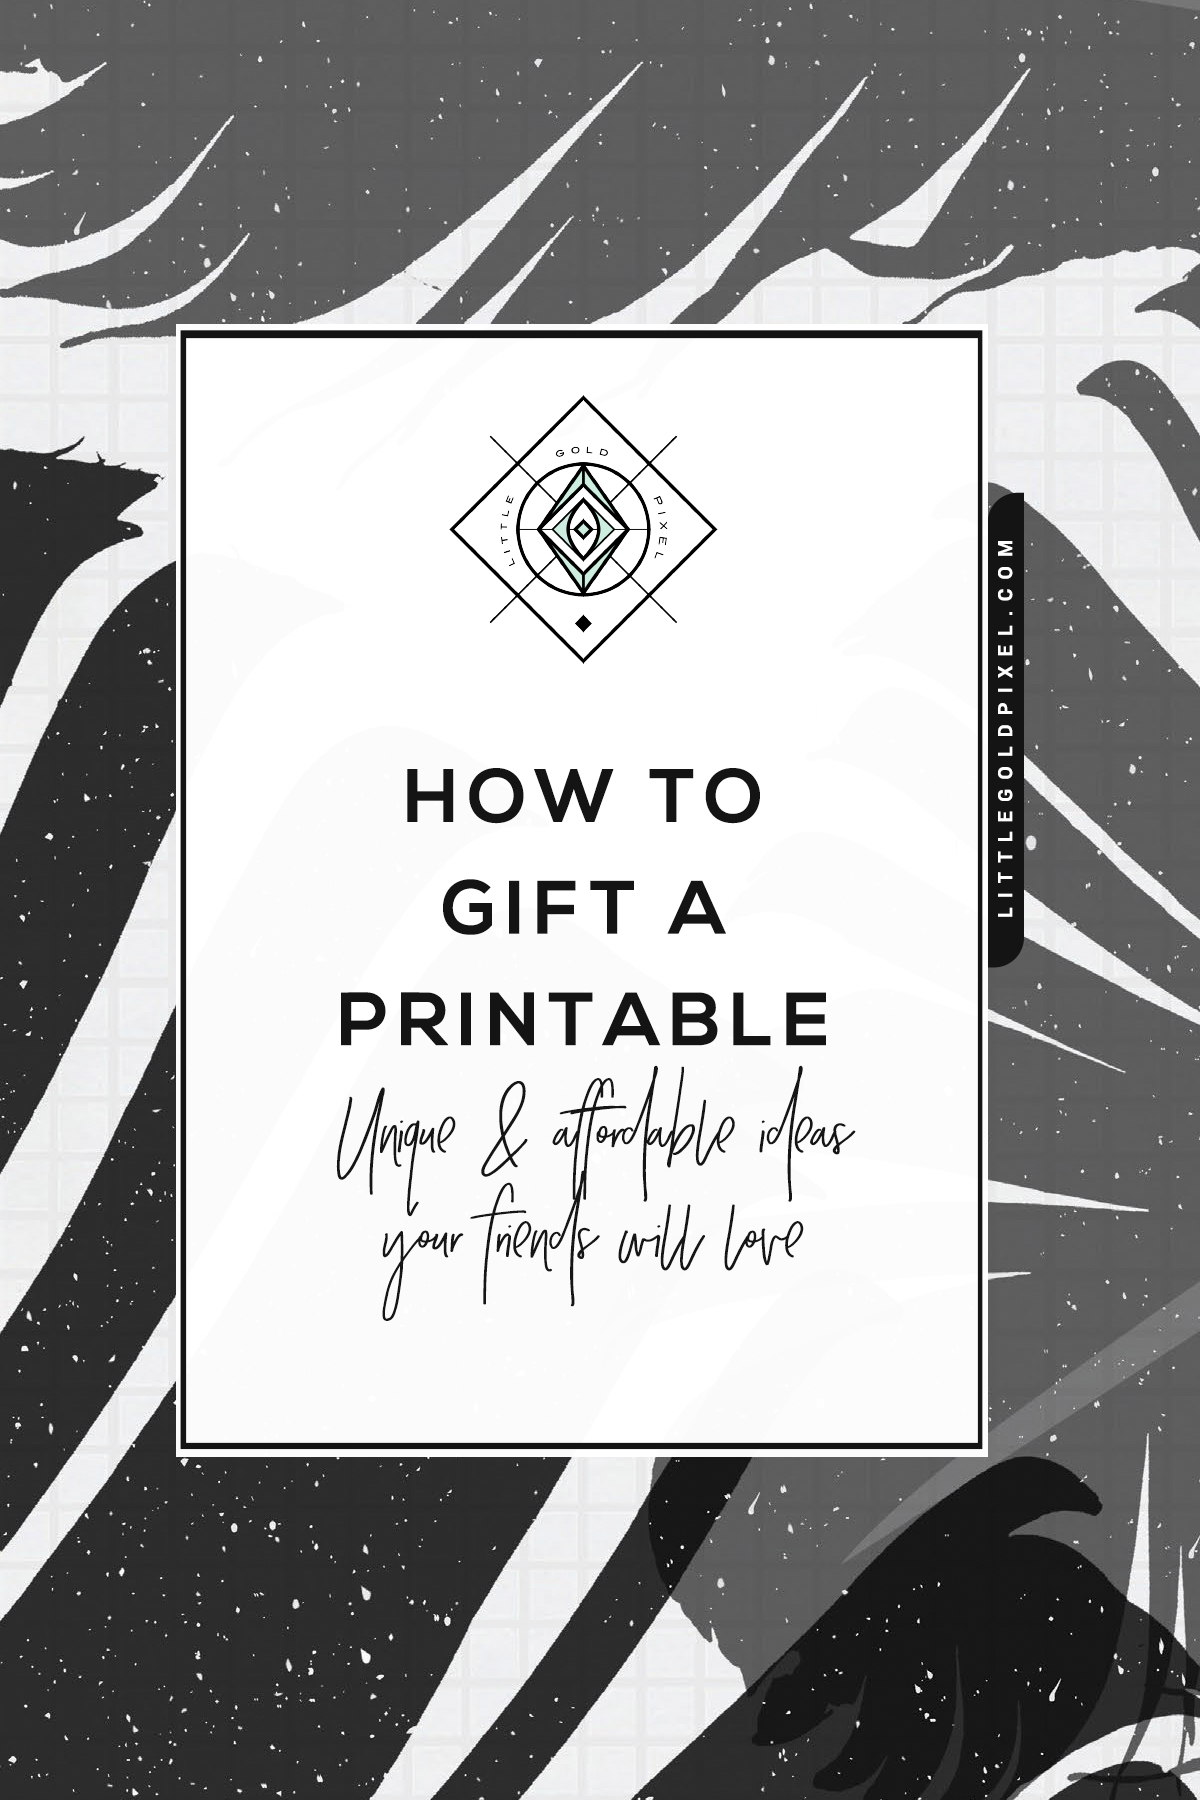 How to Gift a Printable • Unique Gift Ideas •Little Gold Pixel •Easy and affordable ways to gift a printable. For birthdays, special occasions, holidays, etc., you can put together a unique and personal gift for her or him for less than $30.